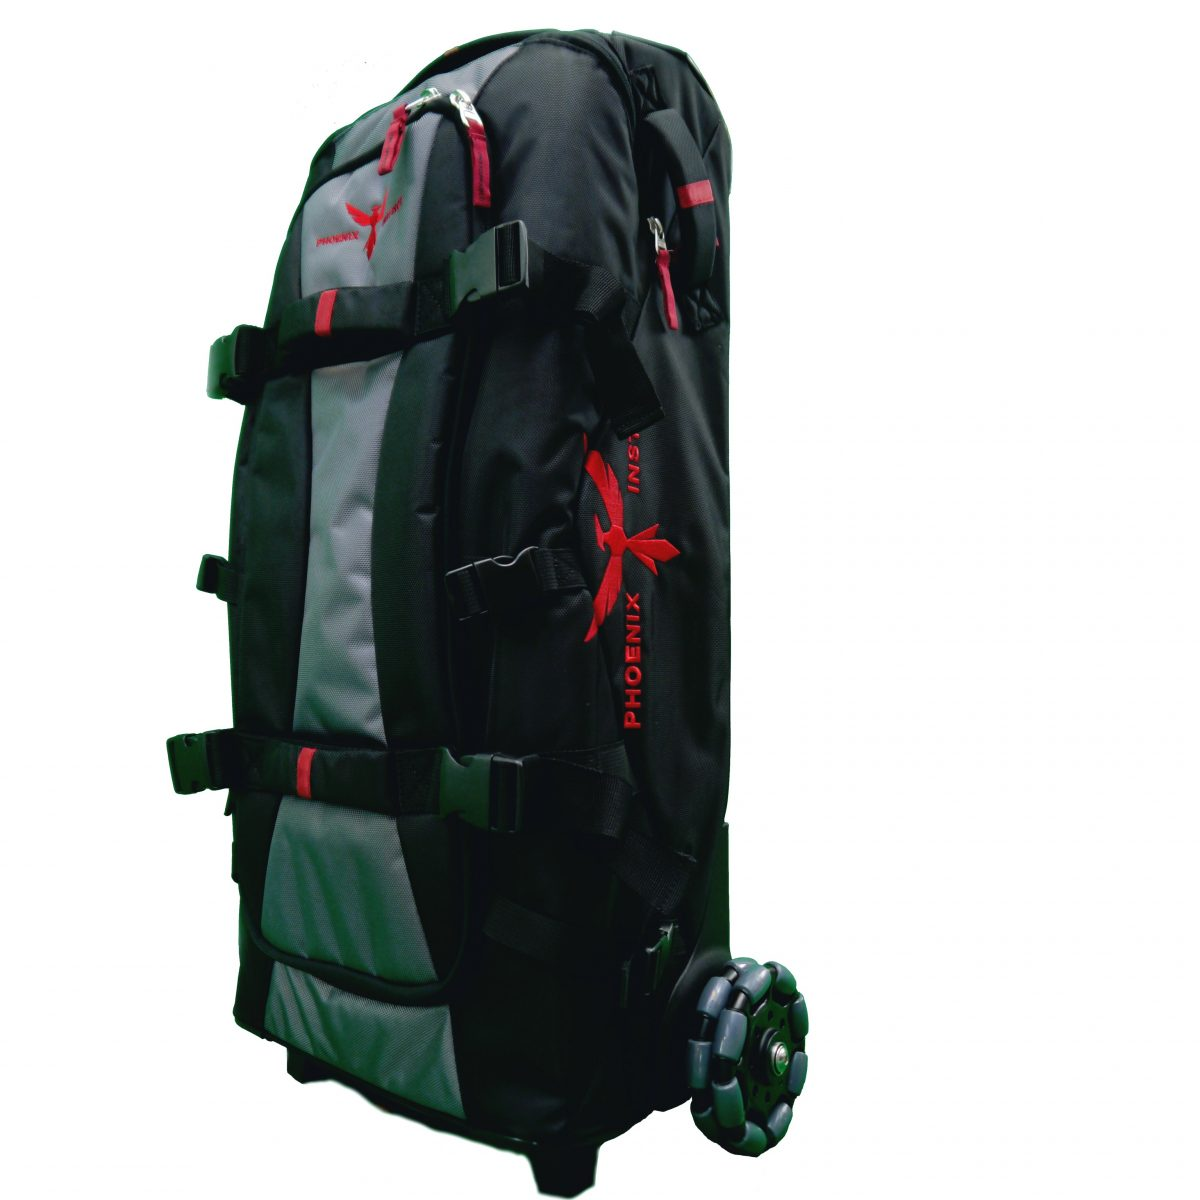 Phoenix Instinct travel and daily bags